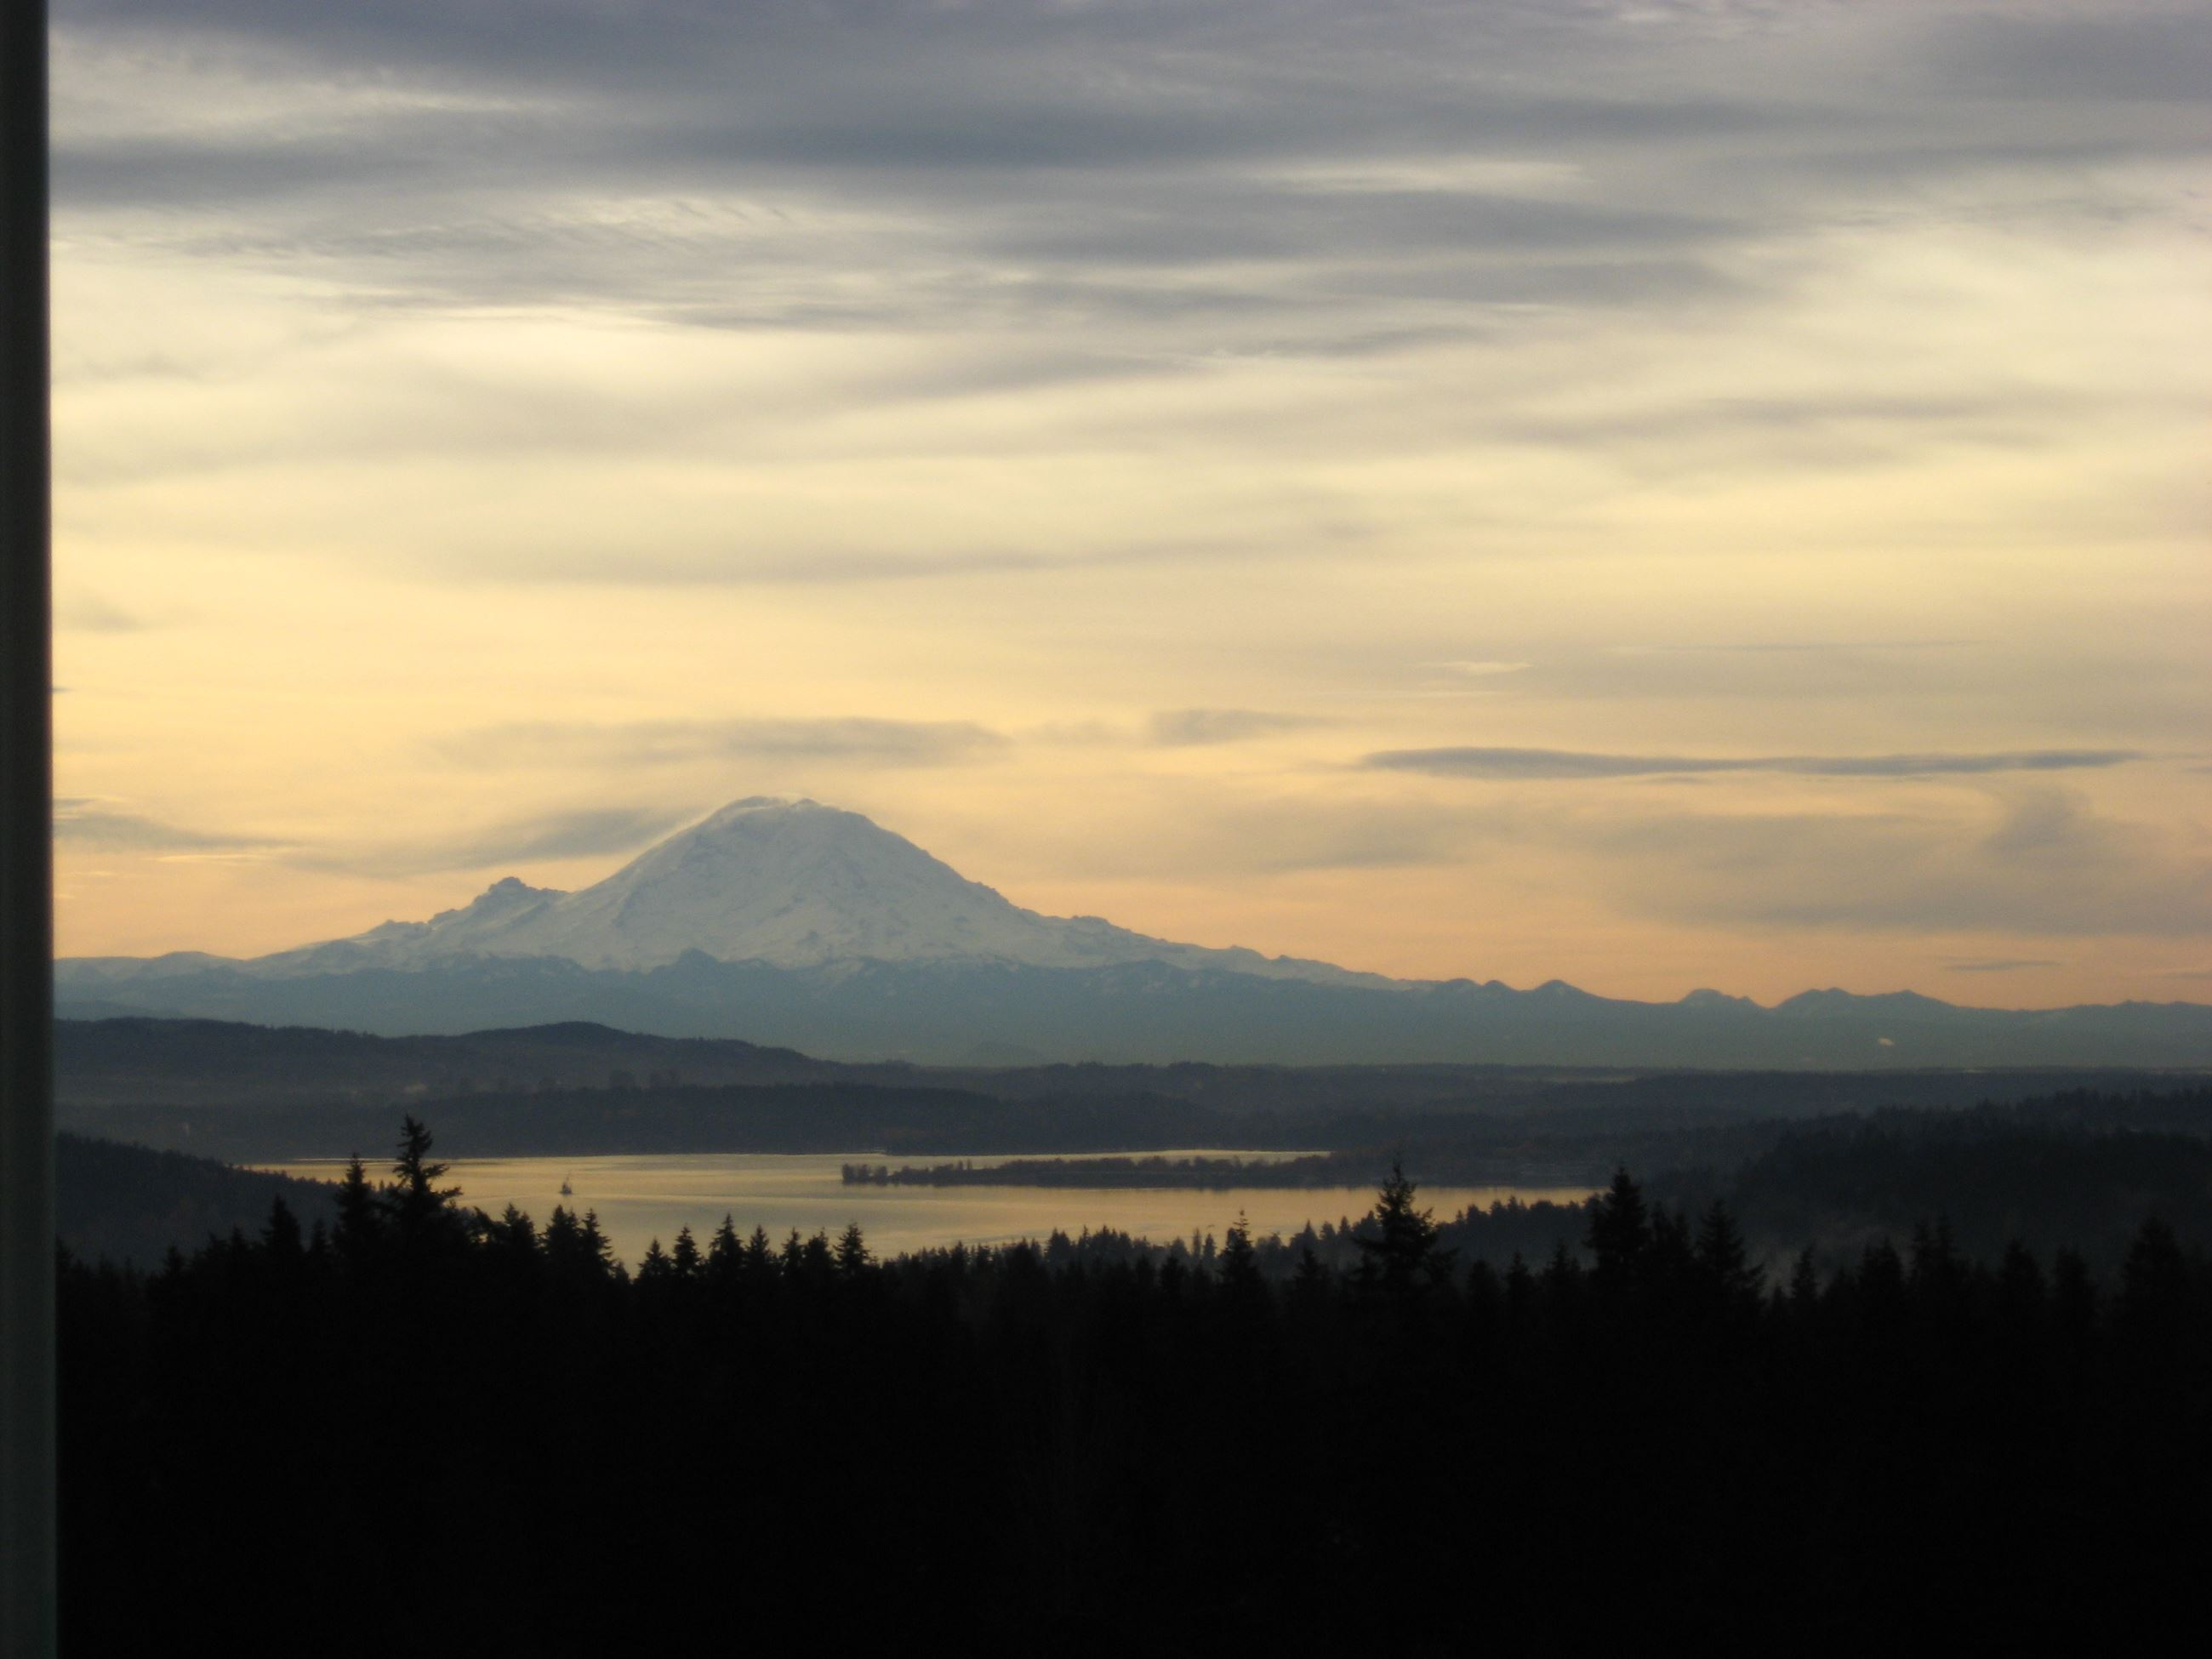 Mt Rainer from Water Tower